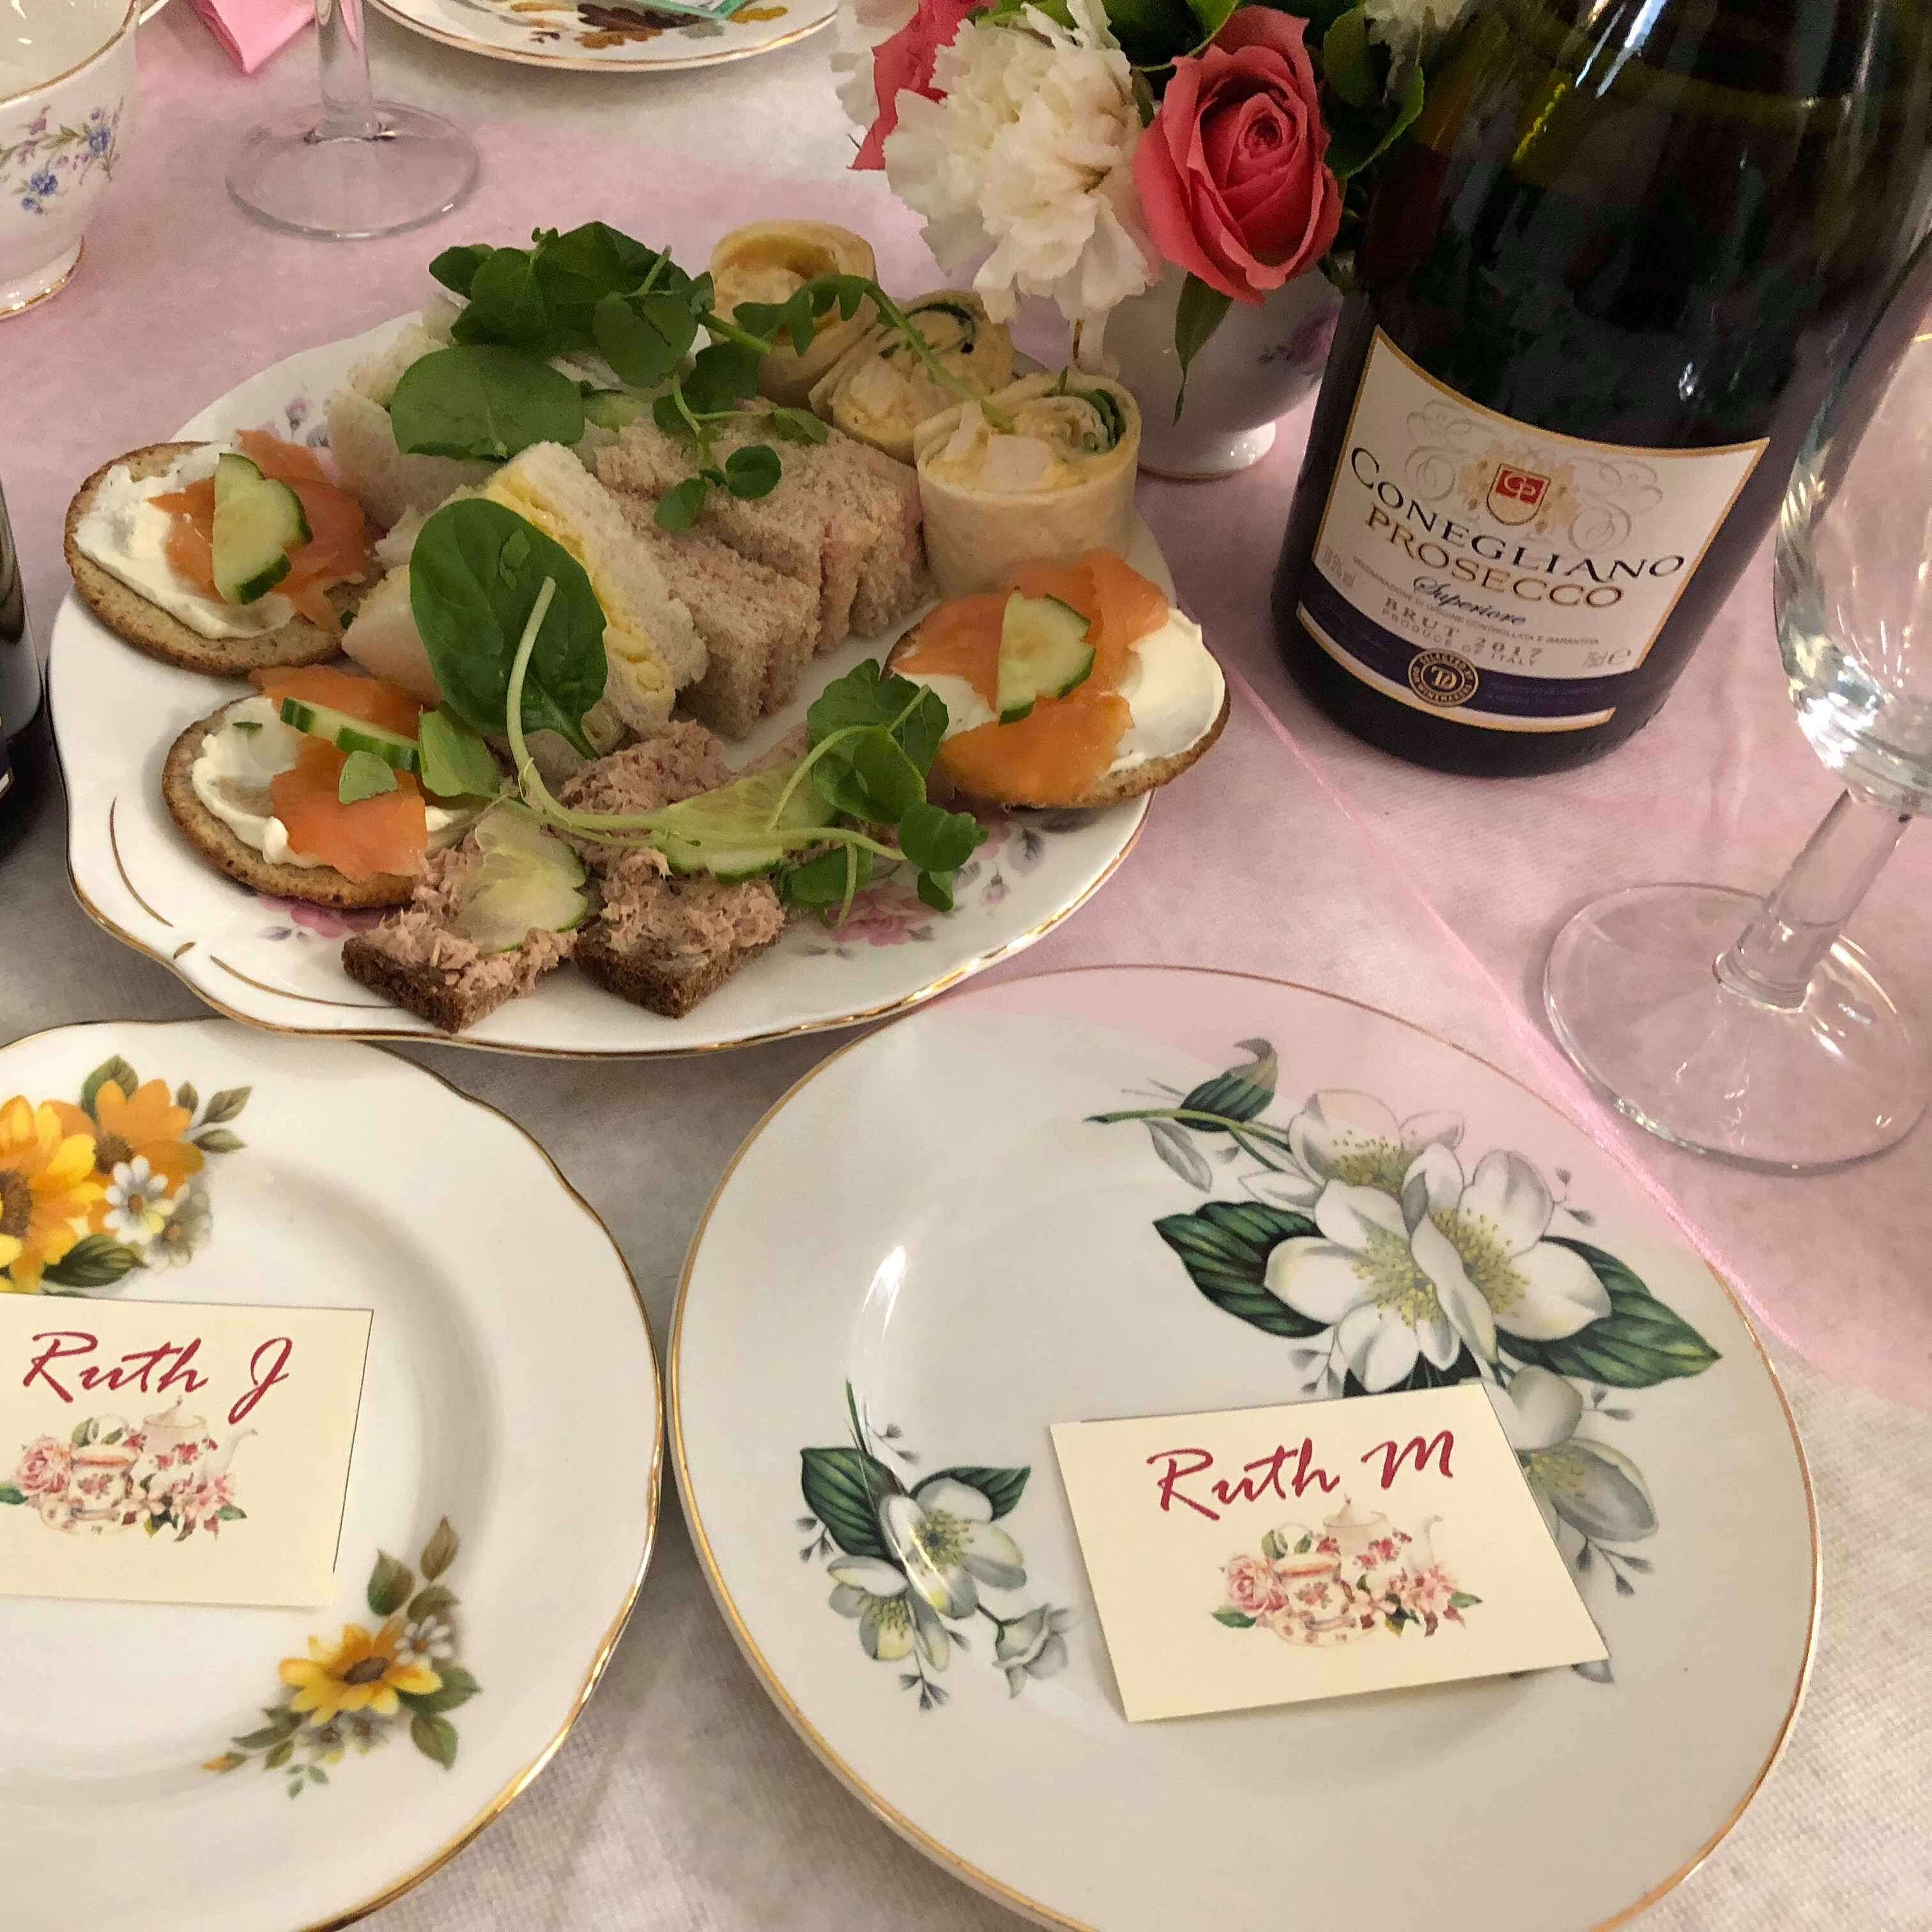 Photo shows a plate of sandwiches, flowers, and Prosecco at an Afternoon Tea Party